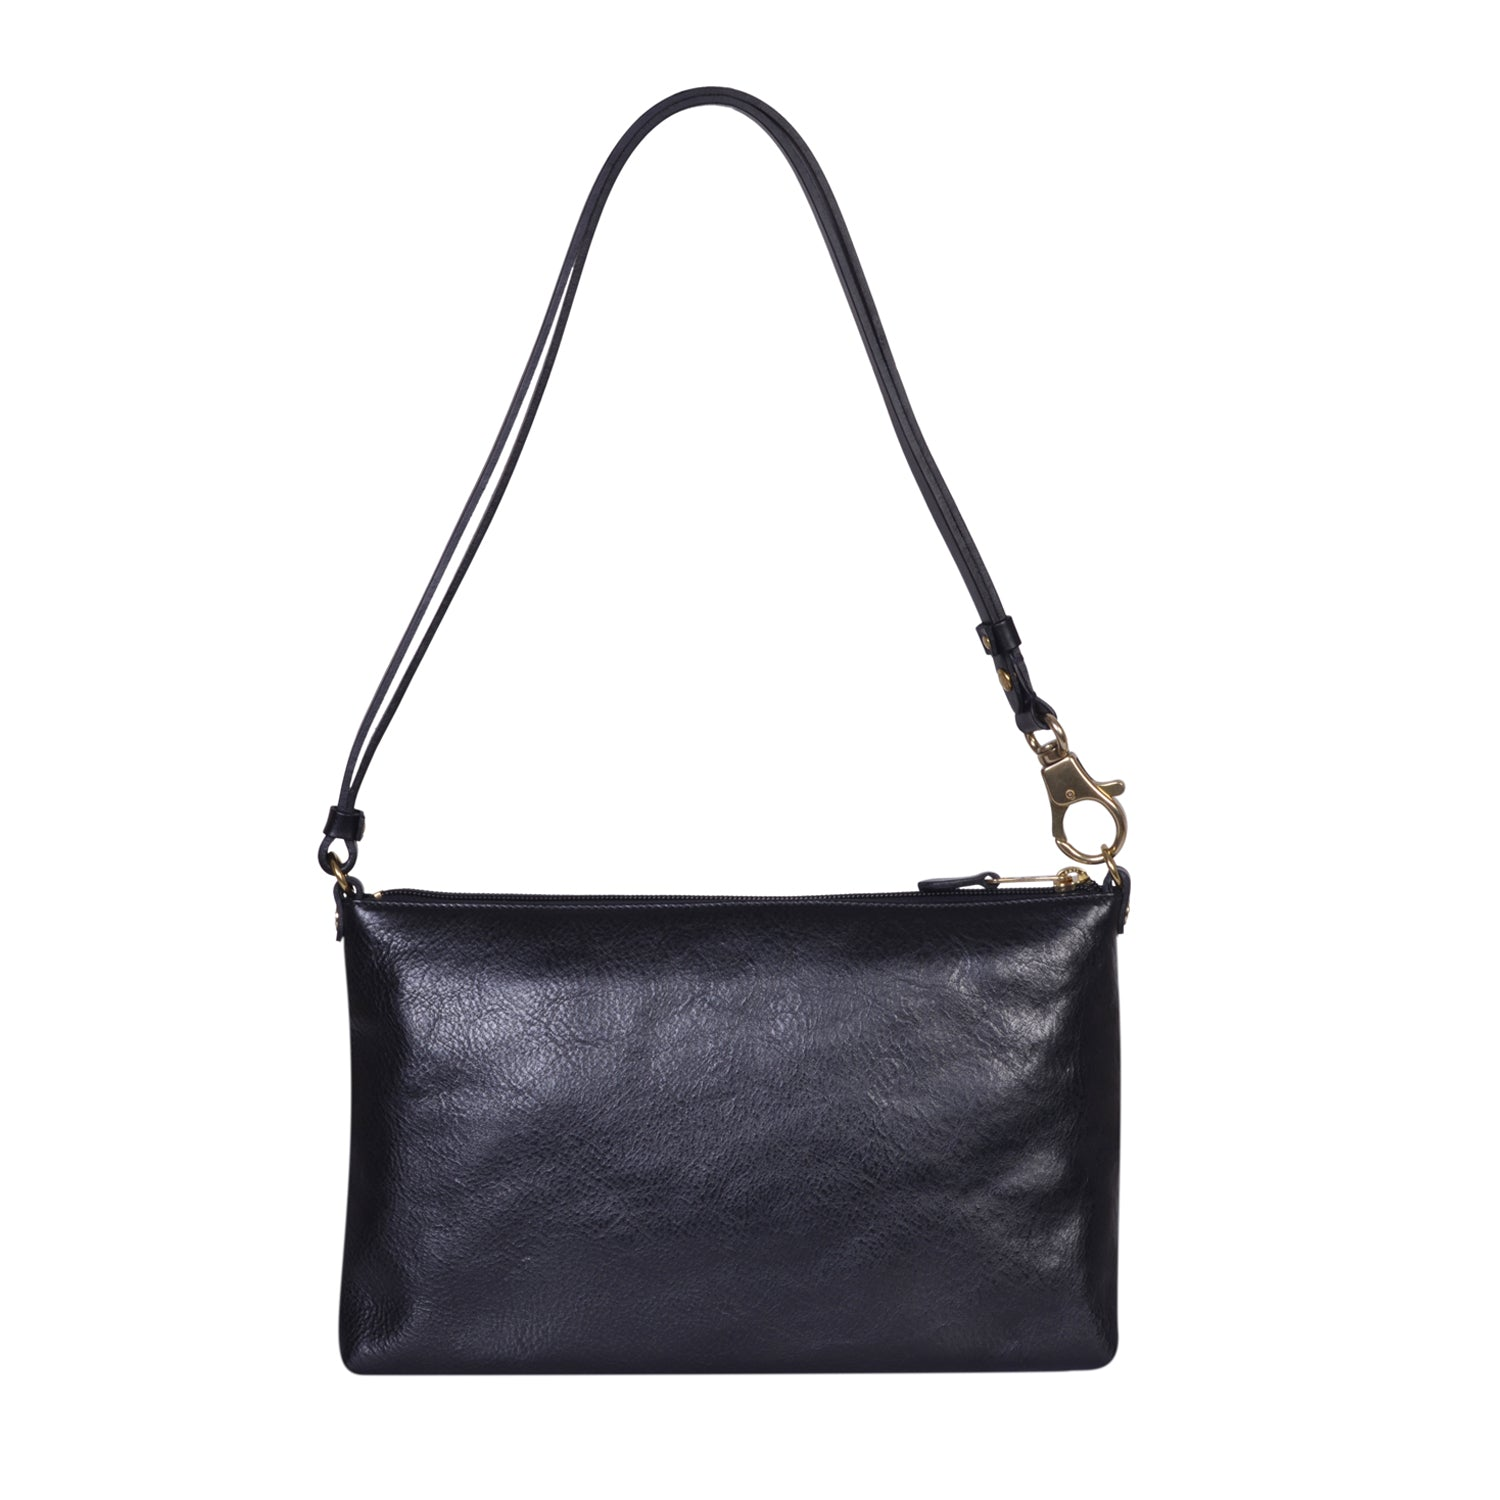 IL BISONTE  WOMAN'S  SHOULDER BAG  IN BLACK COWHIDE LEATHER